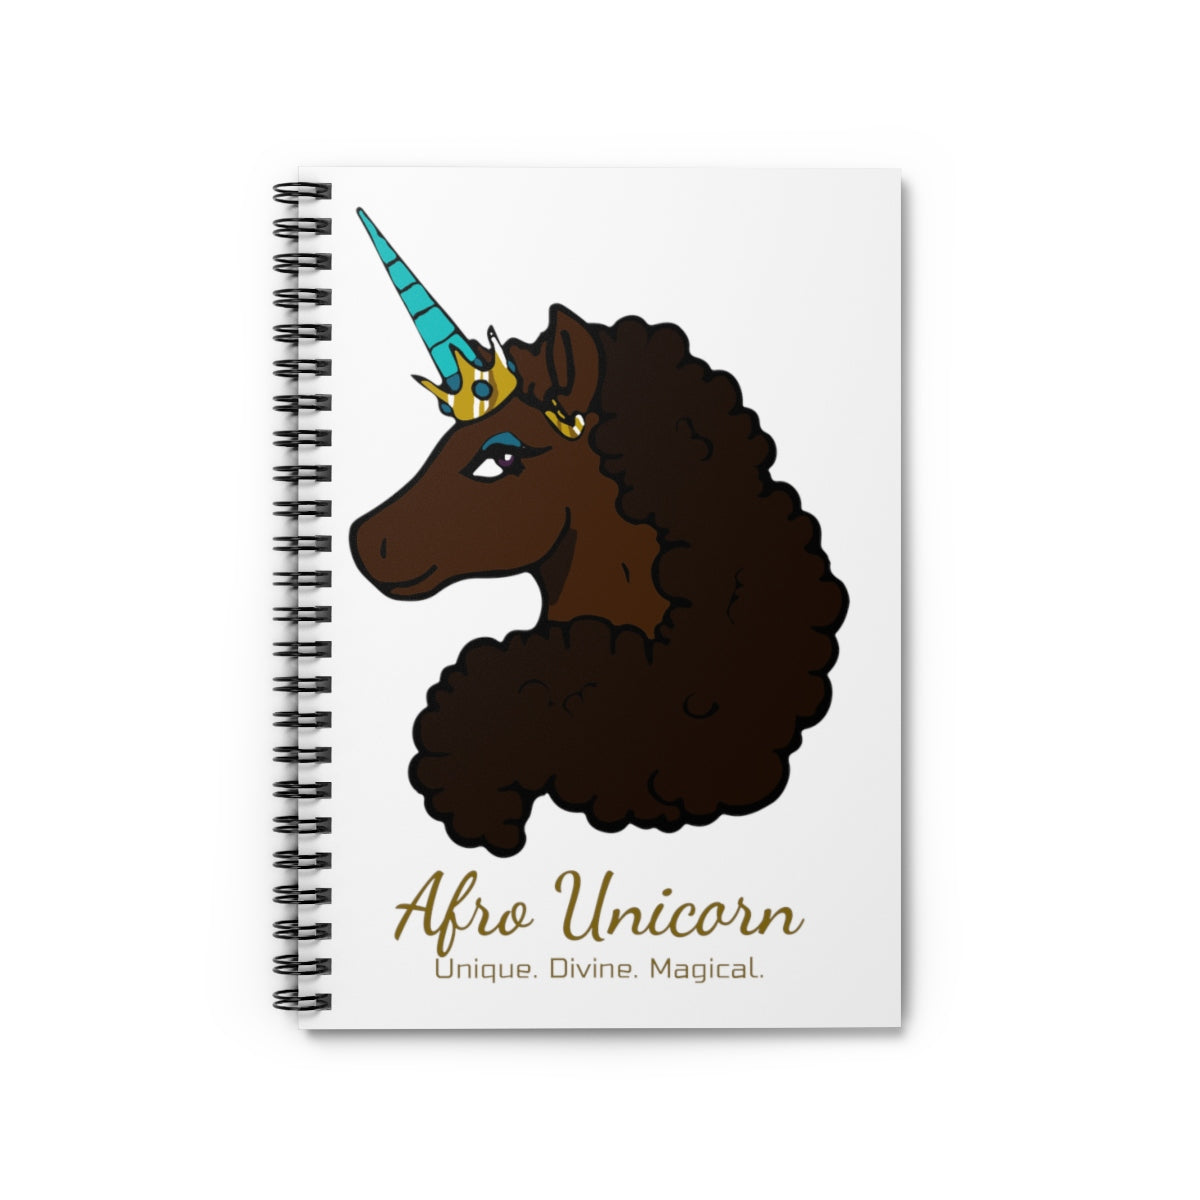 Afro Unicorn Spiral Notebook - Mocha- Afro Unicorn